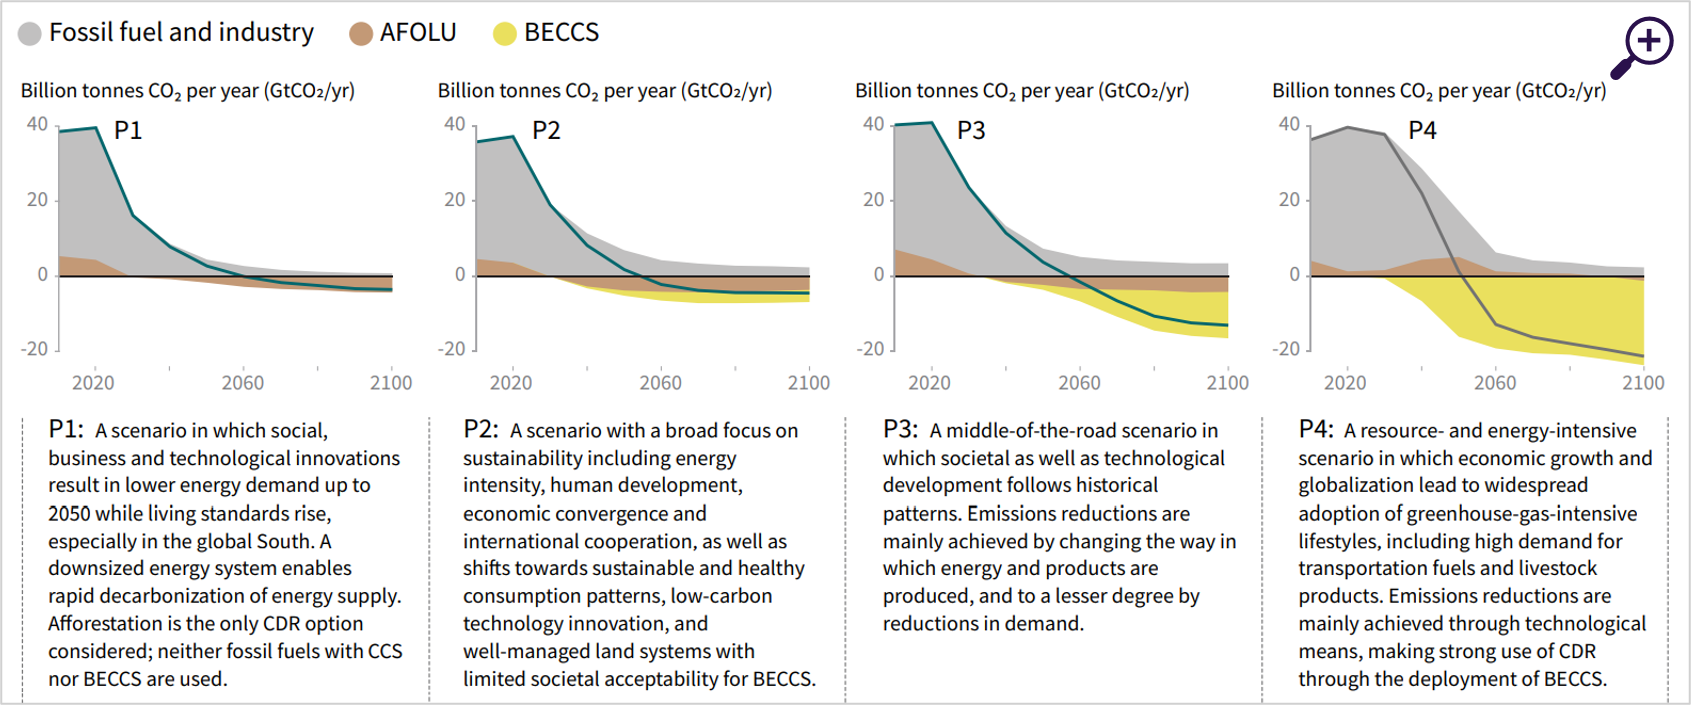 Breakdown of contribution to global net CO2 emissions in four illustrative model pathways